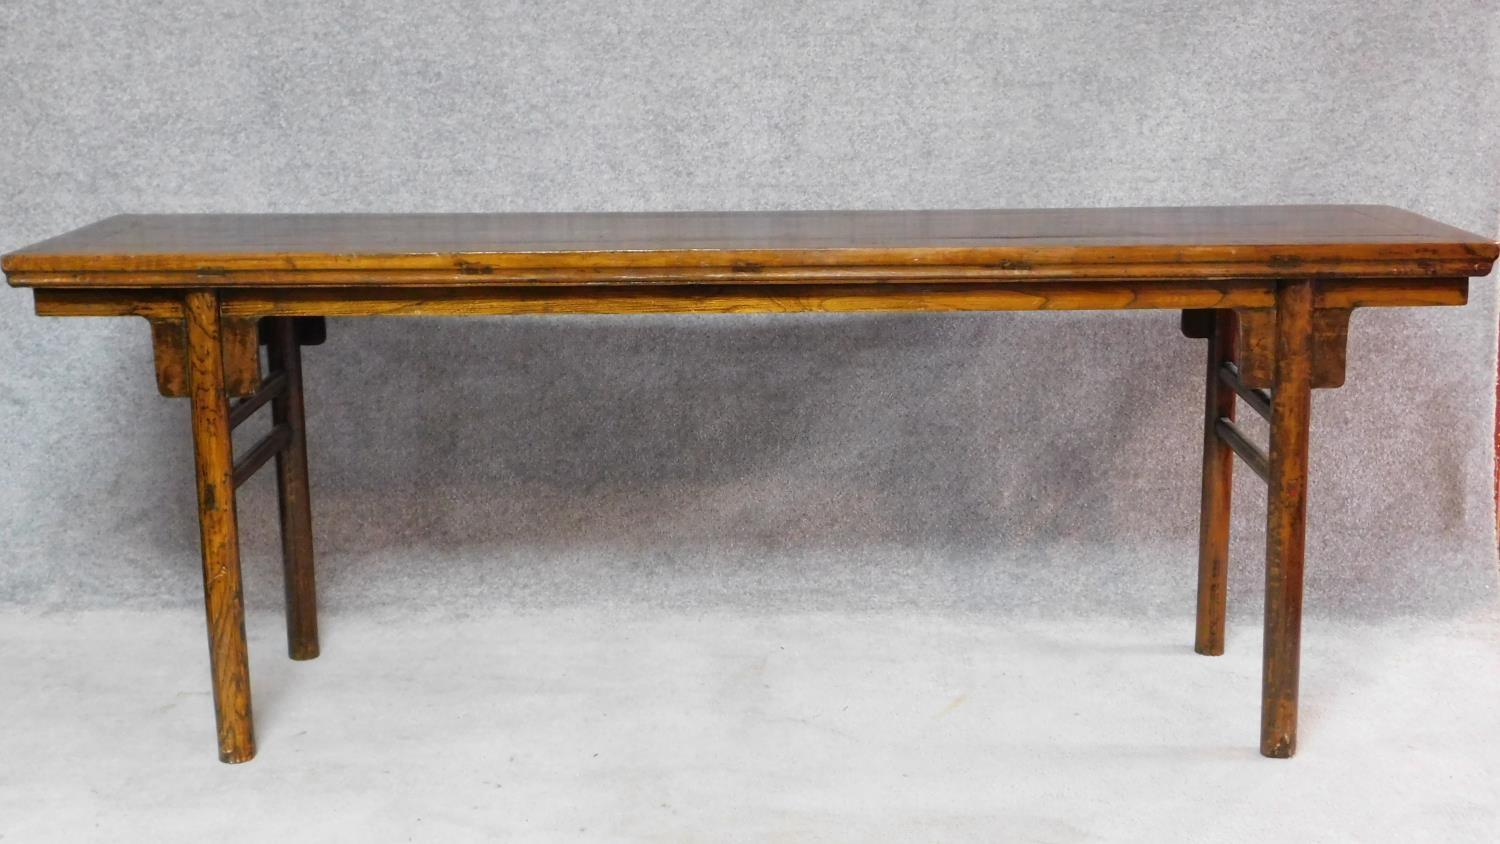 Lot 14 - A large Chinese hardwood alter table with rectangular top on circular section supports. H.81 W.223